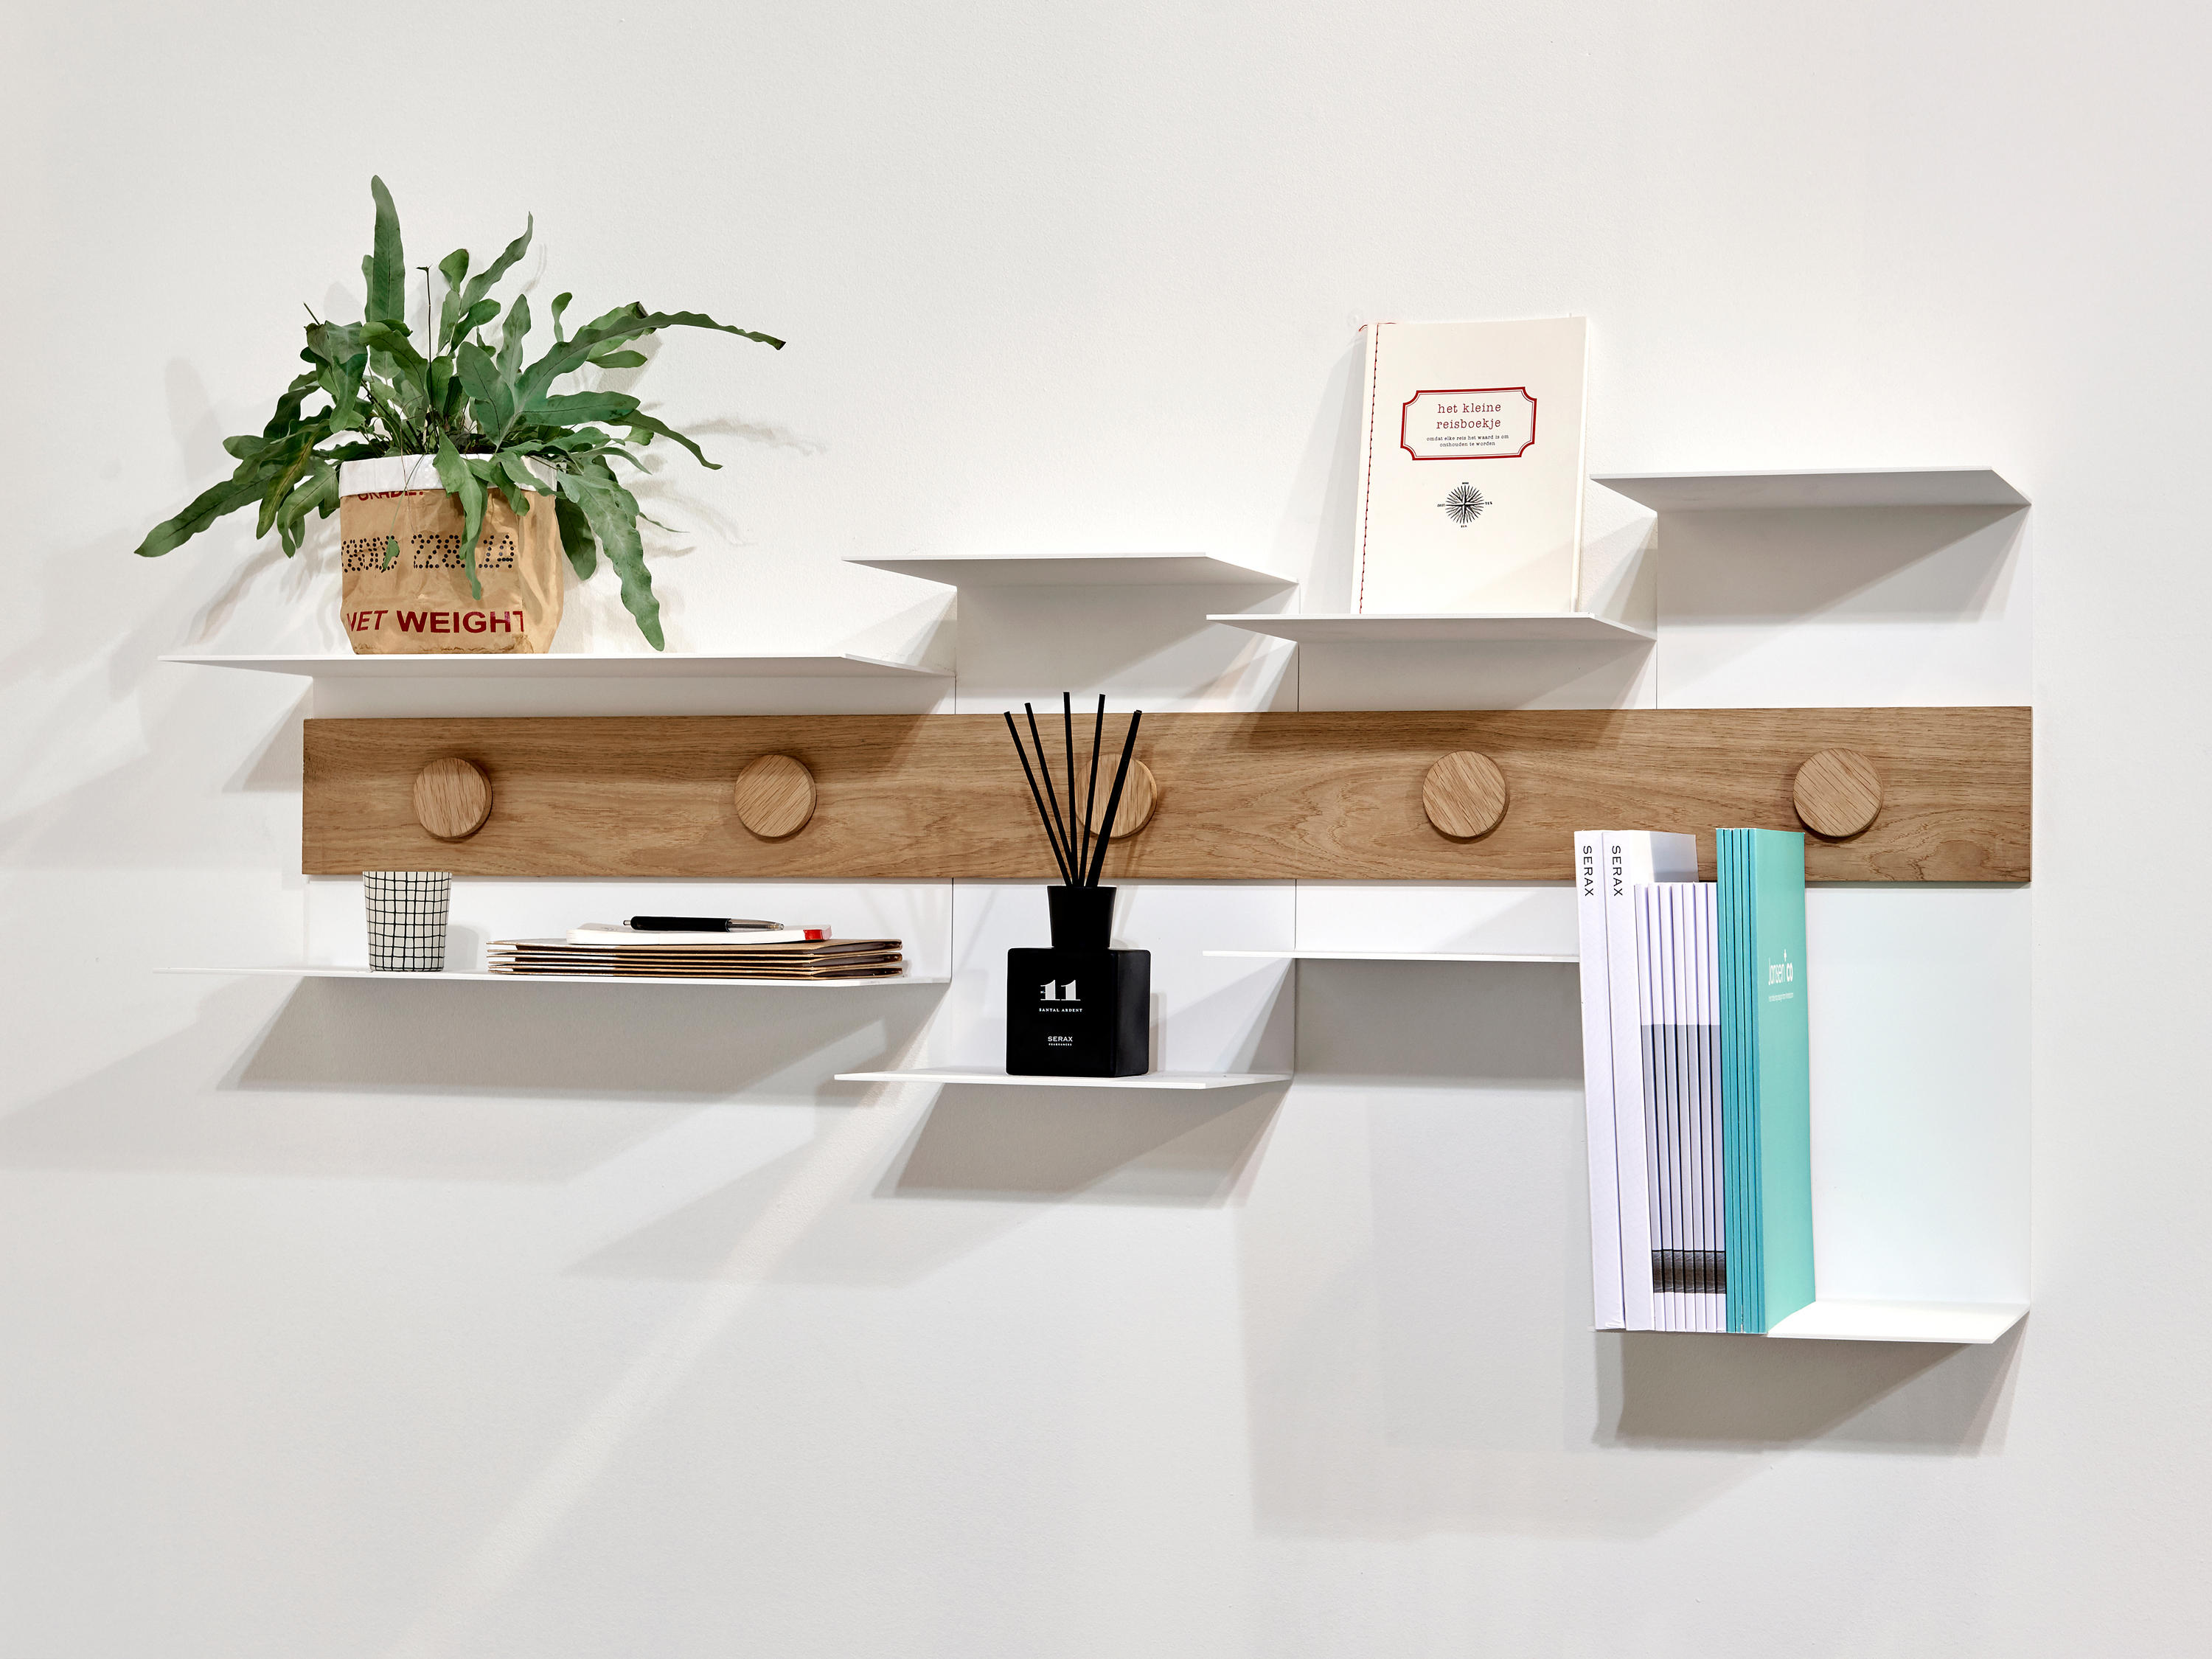 Junction Movable Shelf Shelves From Serax Architonic